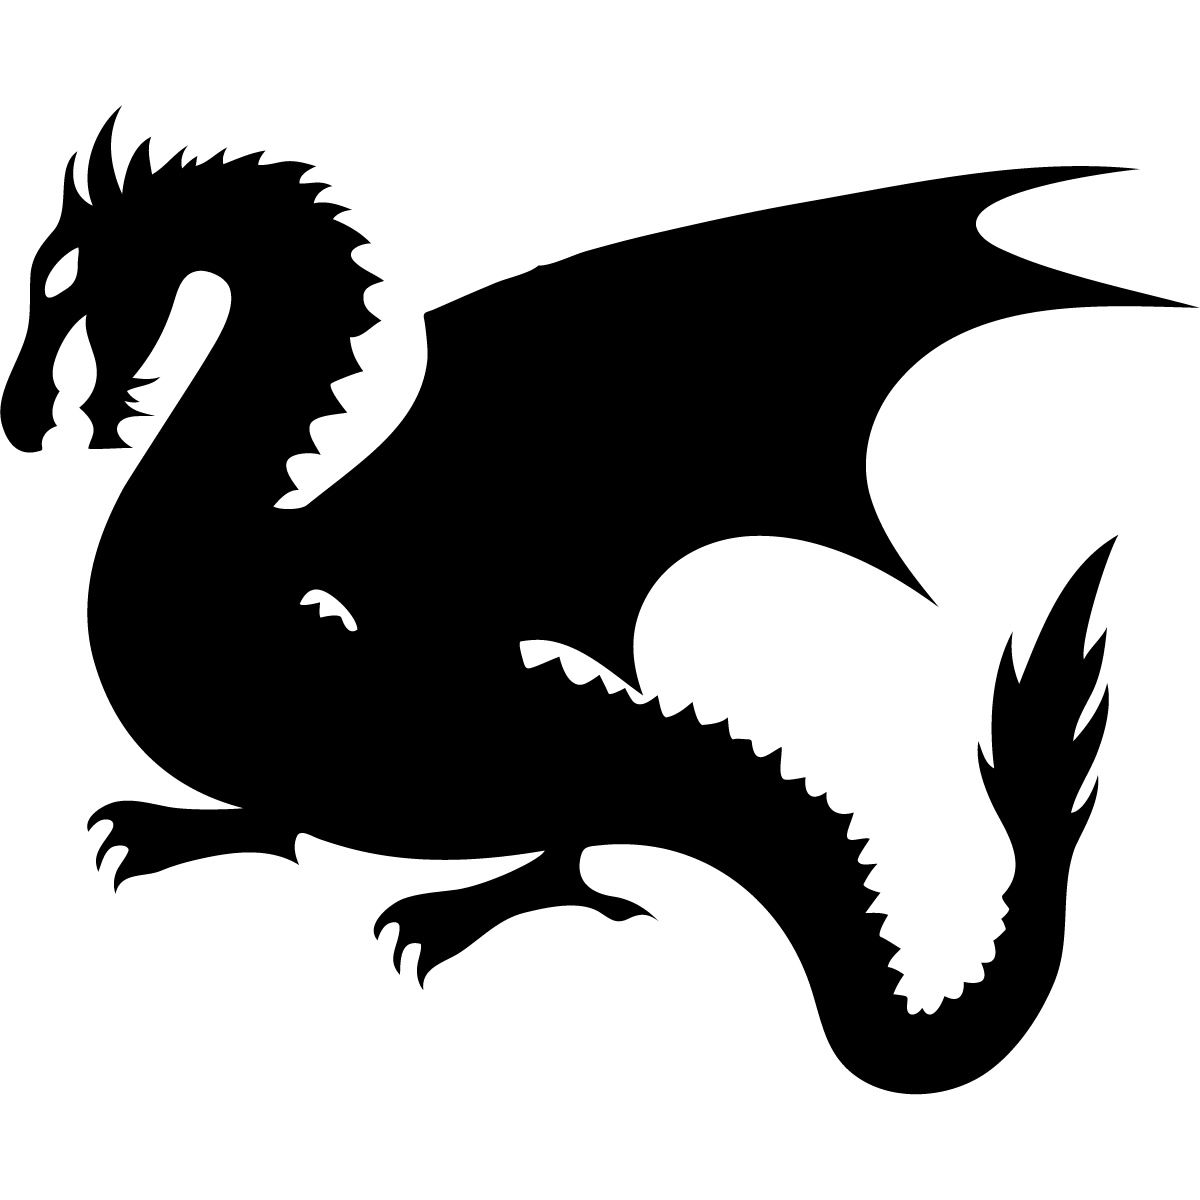 cute baby dragon clipart free clipart images image 6 crafty things rh pinterest co uk free dragon clipart images dragon clipart gratuit